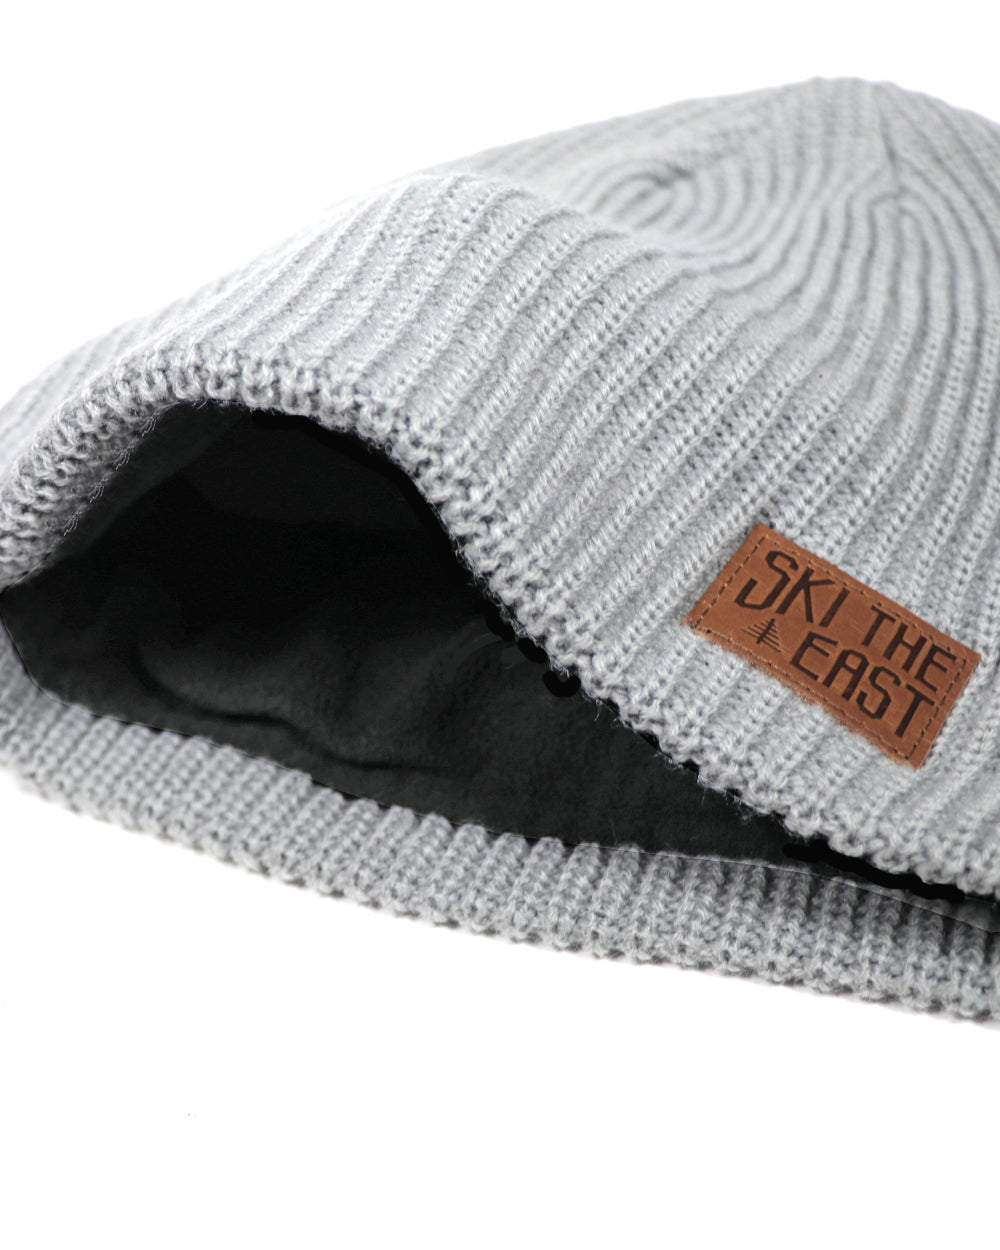 Camper Fleece Lined Beanie - Gray - Ski The East 31ff469bce7